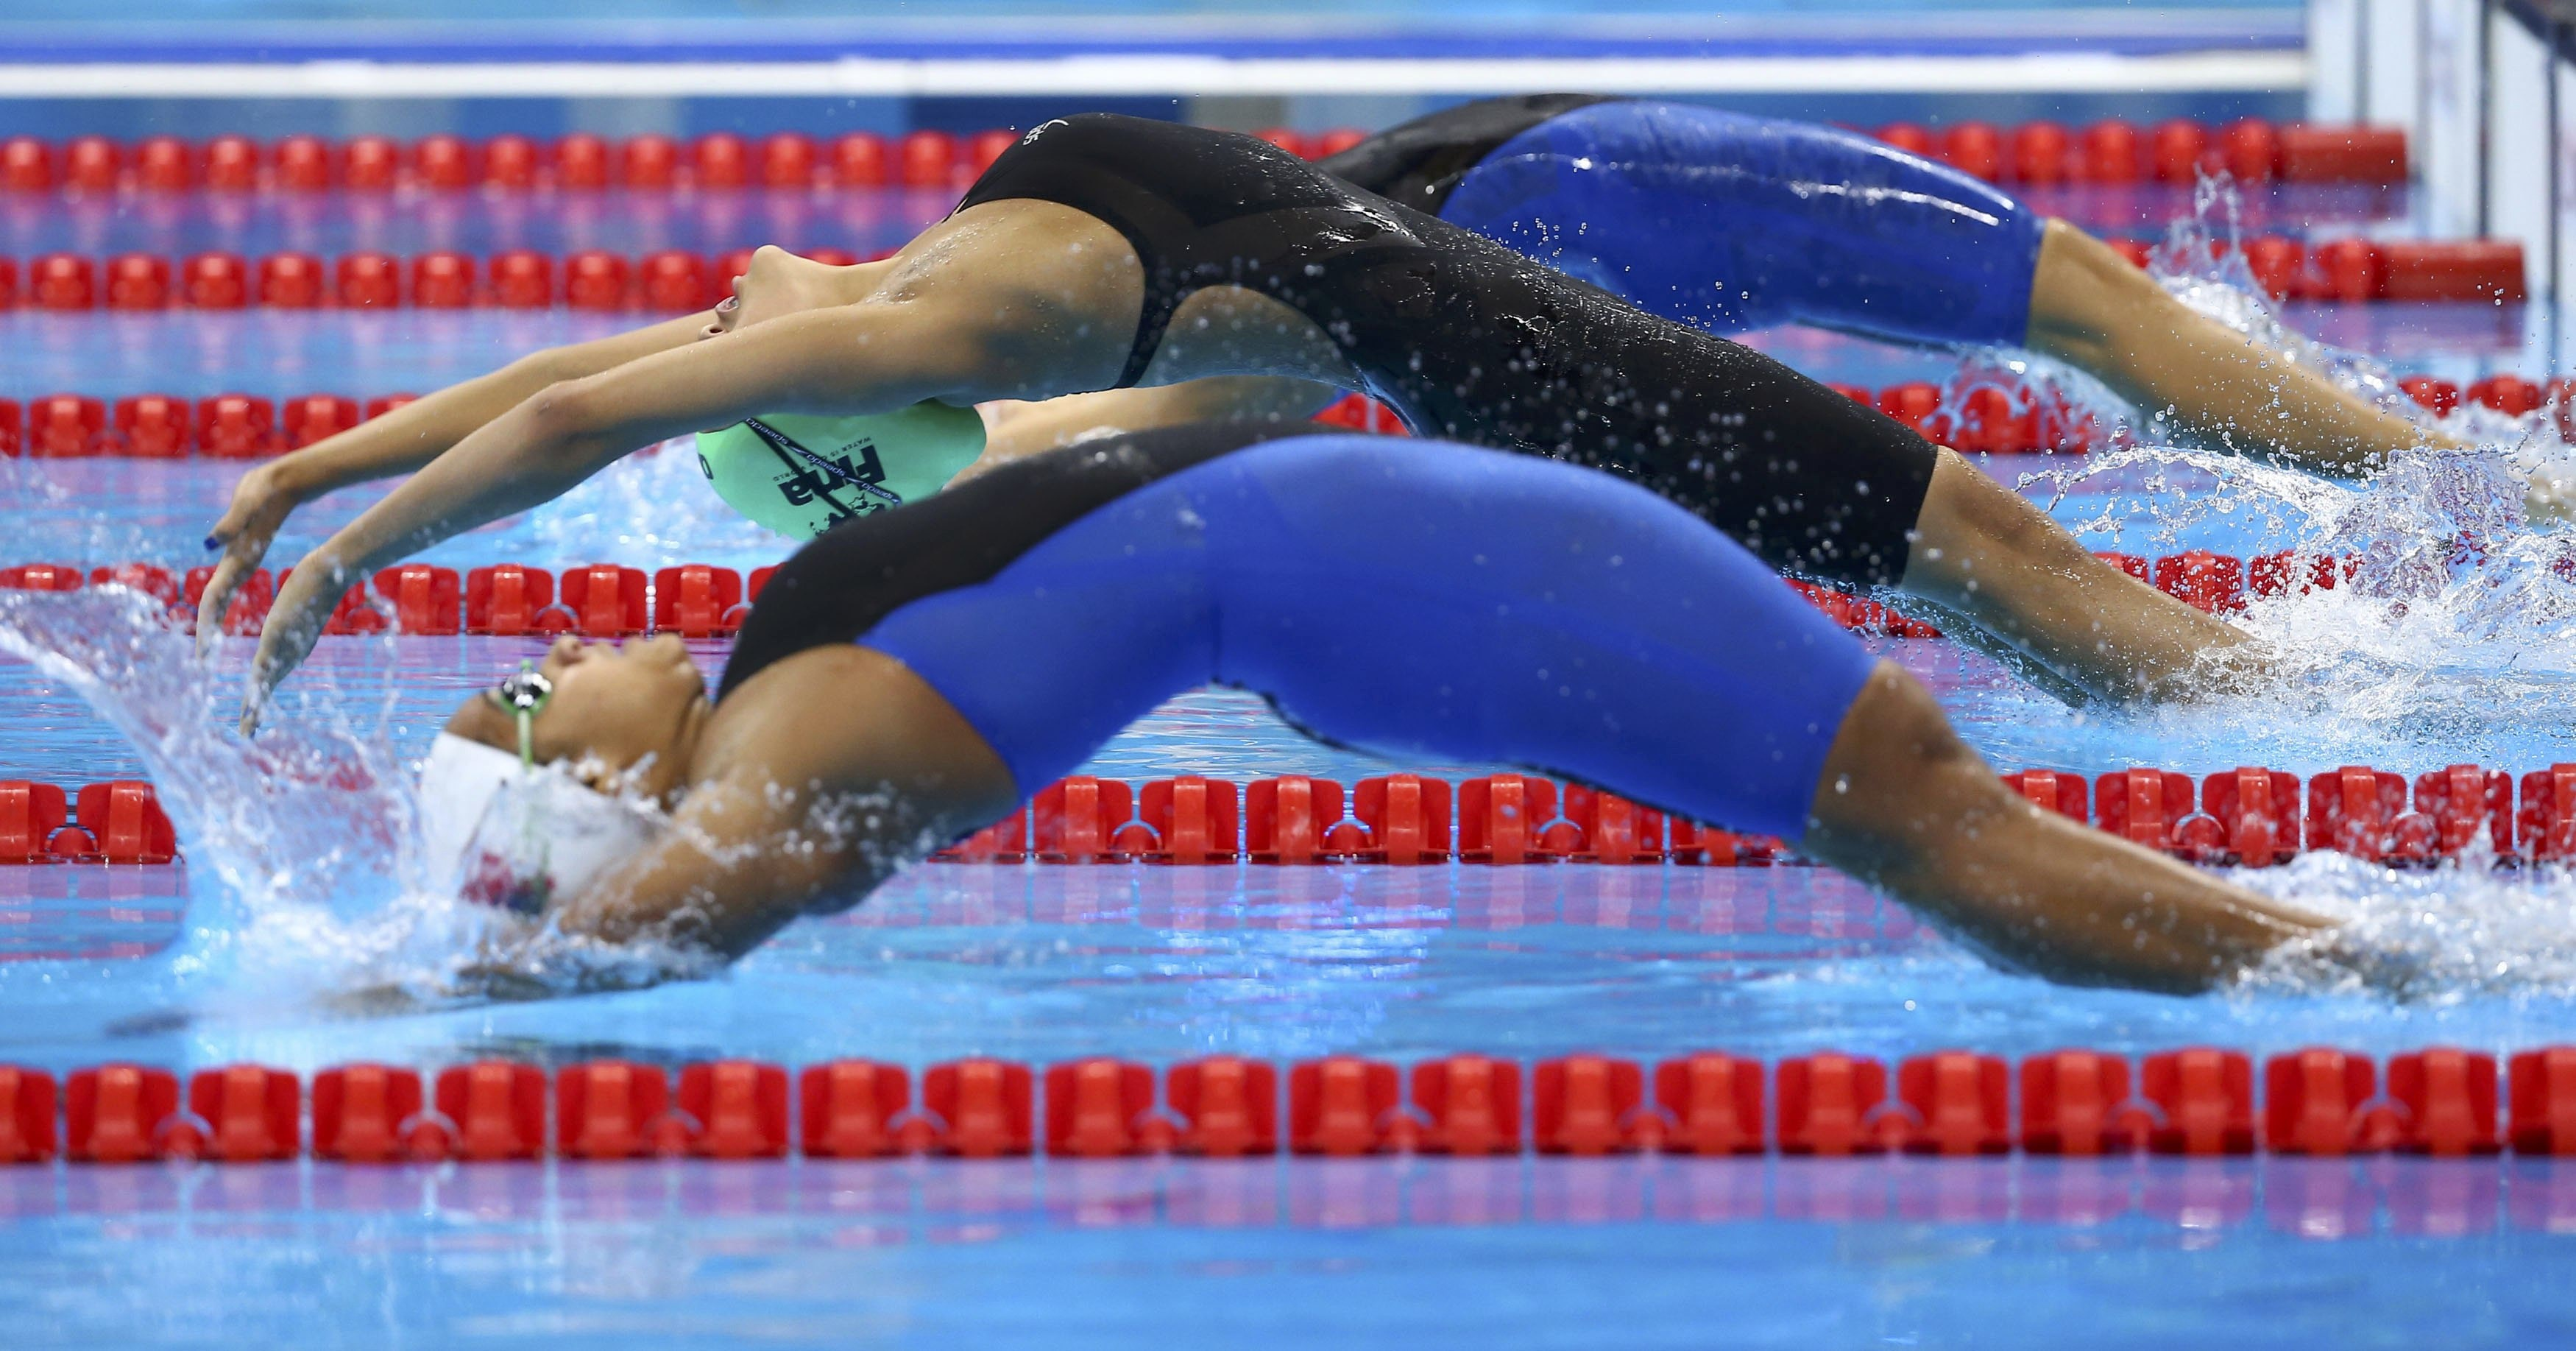 2016 Rio Olympics - Swimming - Preliminary - Women's 100m Backstroke - Heats - Olympic Aquatics Stadium - Rio de Janeiro, Brazil - 07/08/2016. Gaurika Singh (NEP) of Nepal competes. REUTERS/Michael Dalder FOR EDITORIAL USE ONLY. NOT FOR SALE FOR MARKETING OR ADVERTISING CAMPAIGNS.